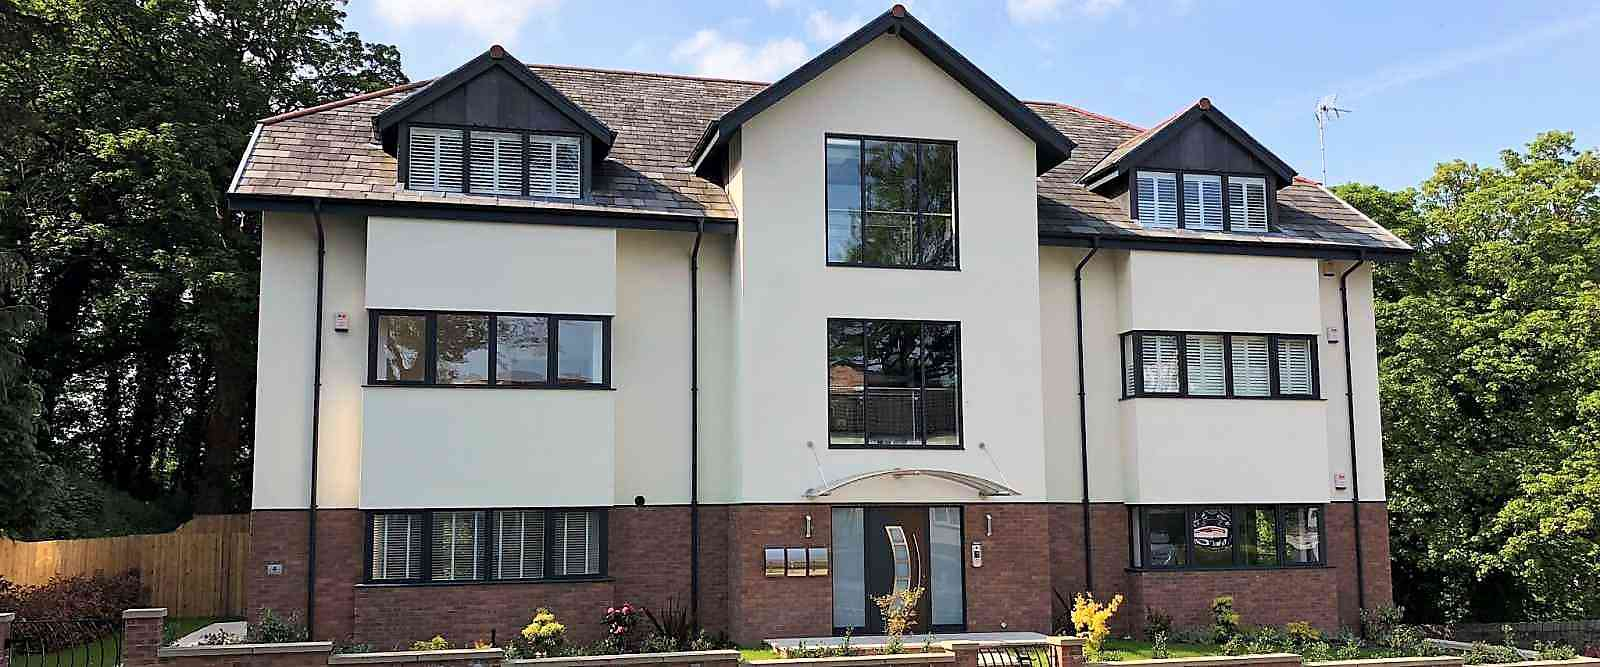 Smart wall glazing on new build apartments Knaresborough North Yorkshire